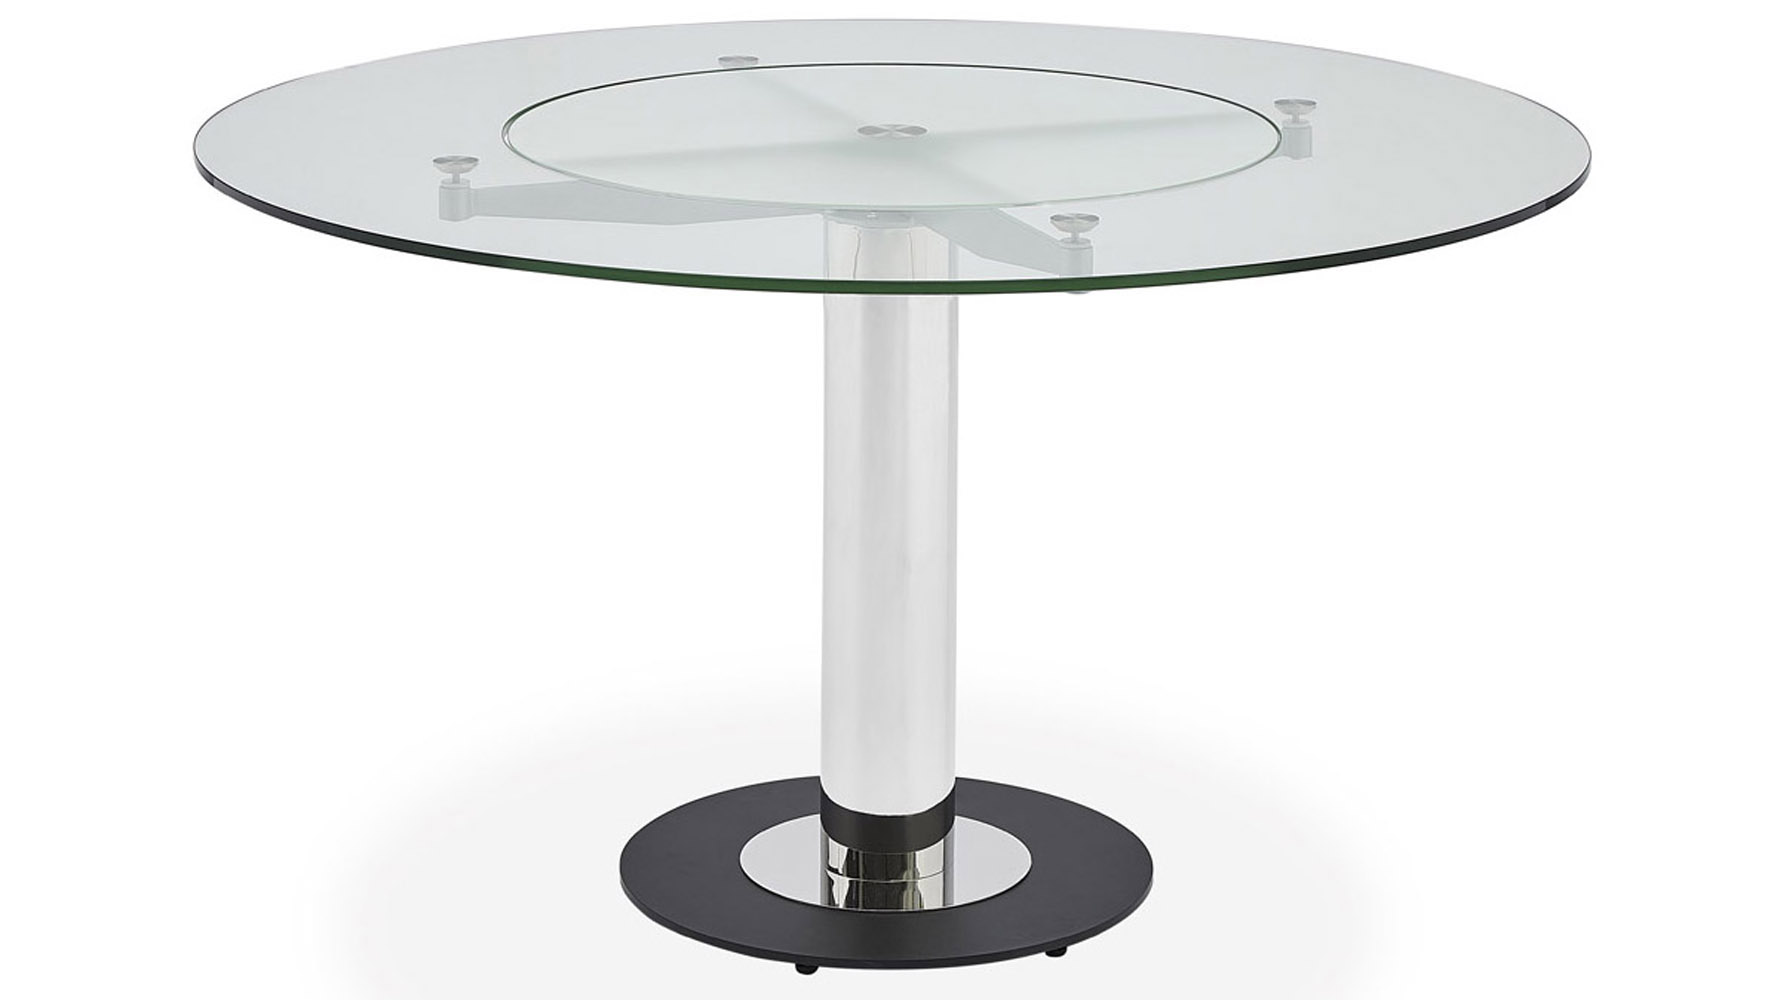 Fiore Modern Round Glass Dining Table With Chrome Base